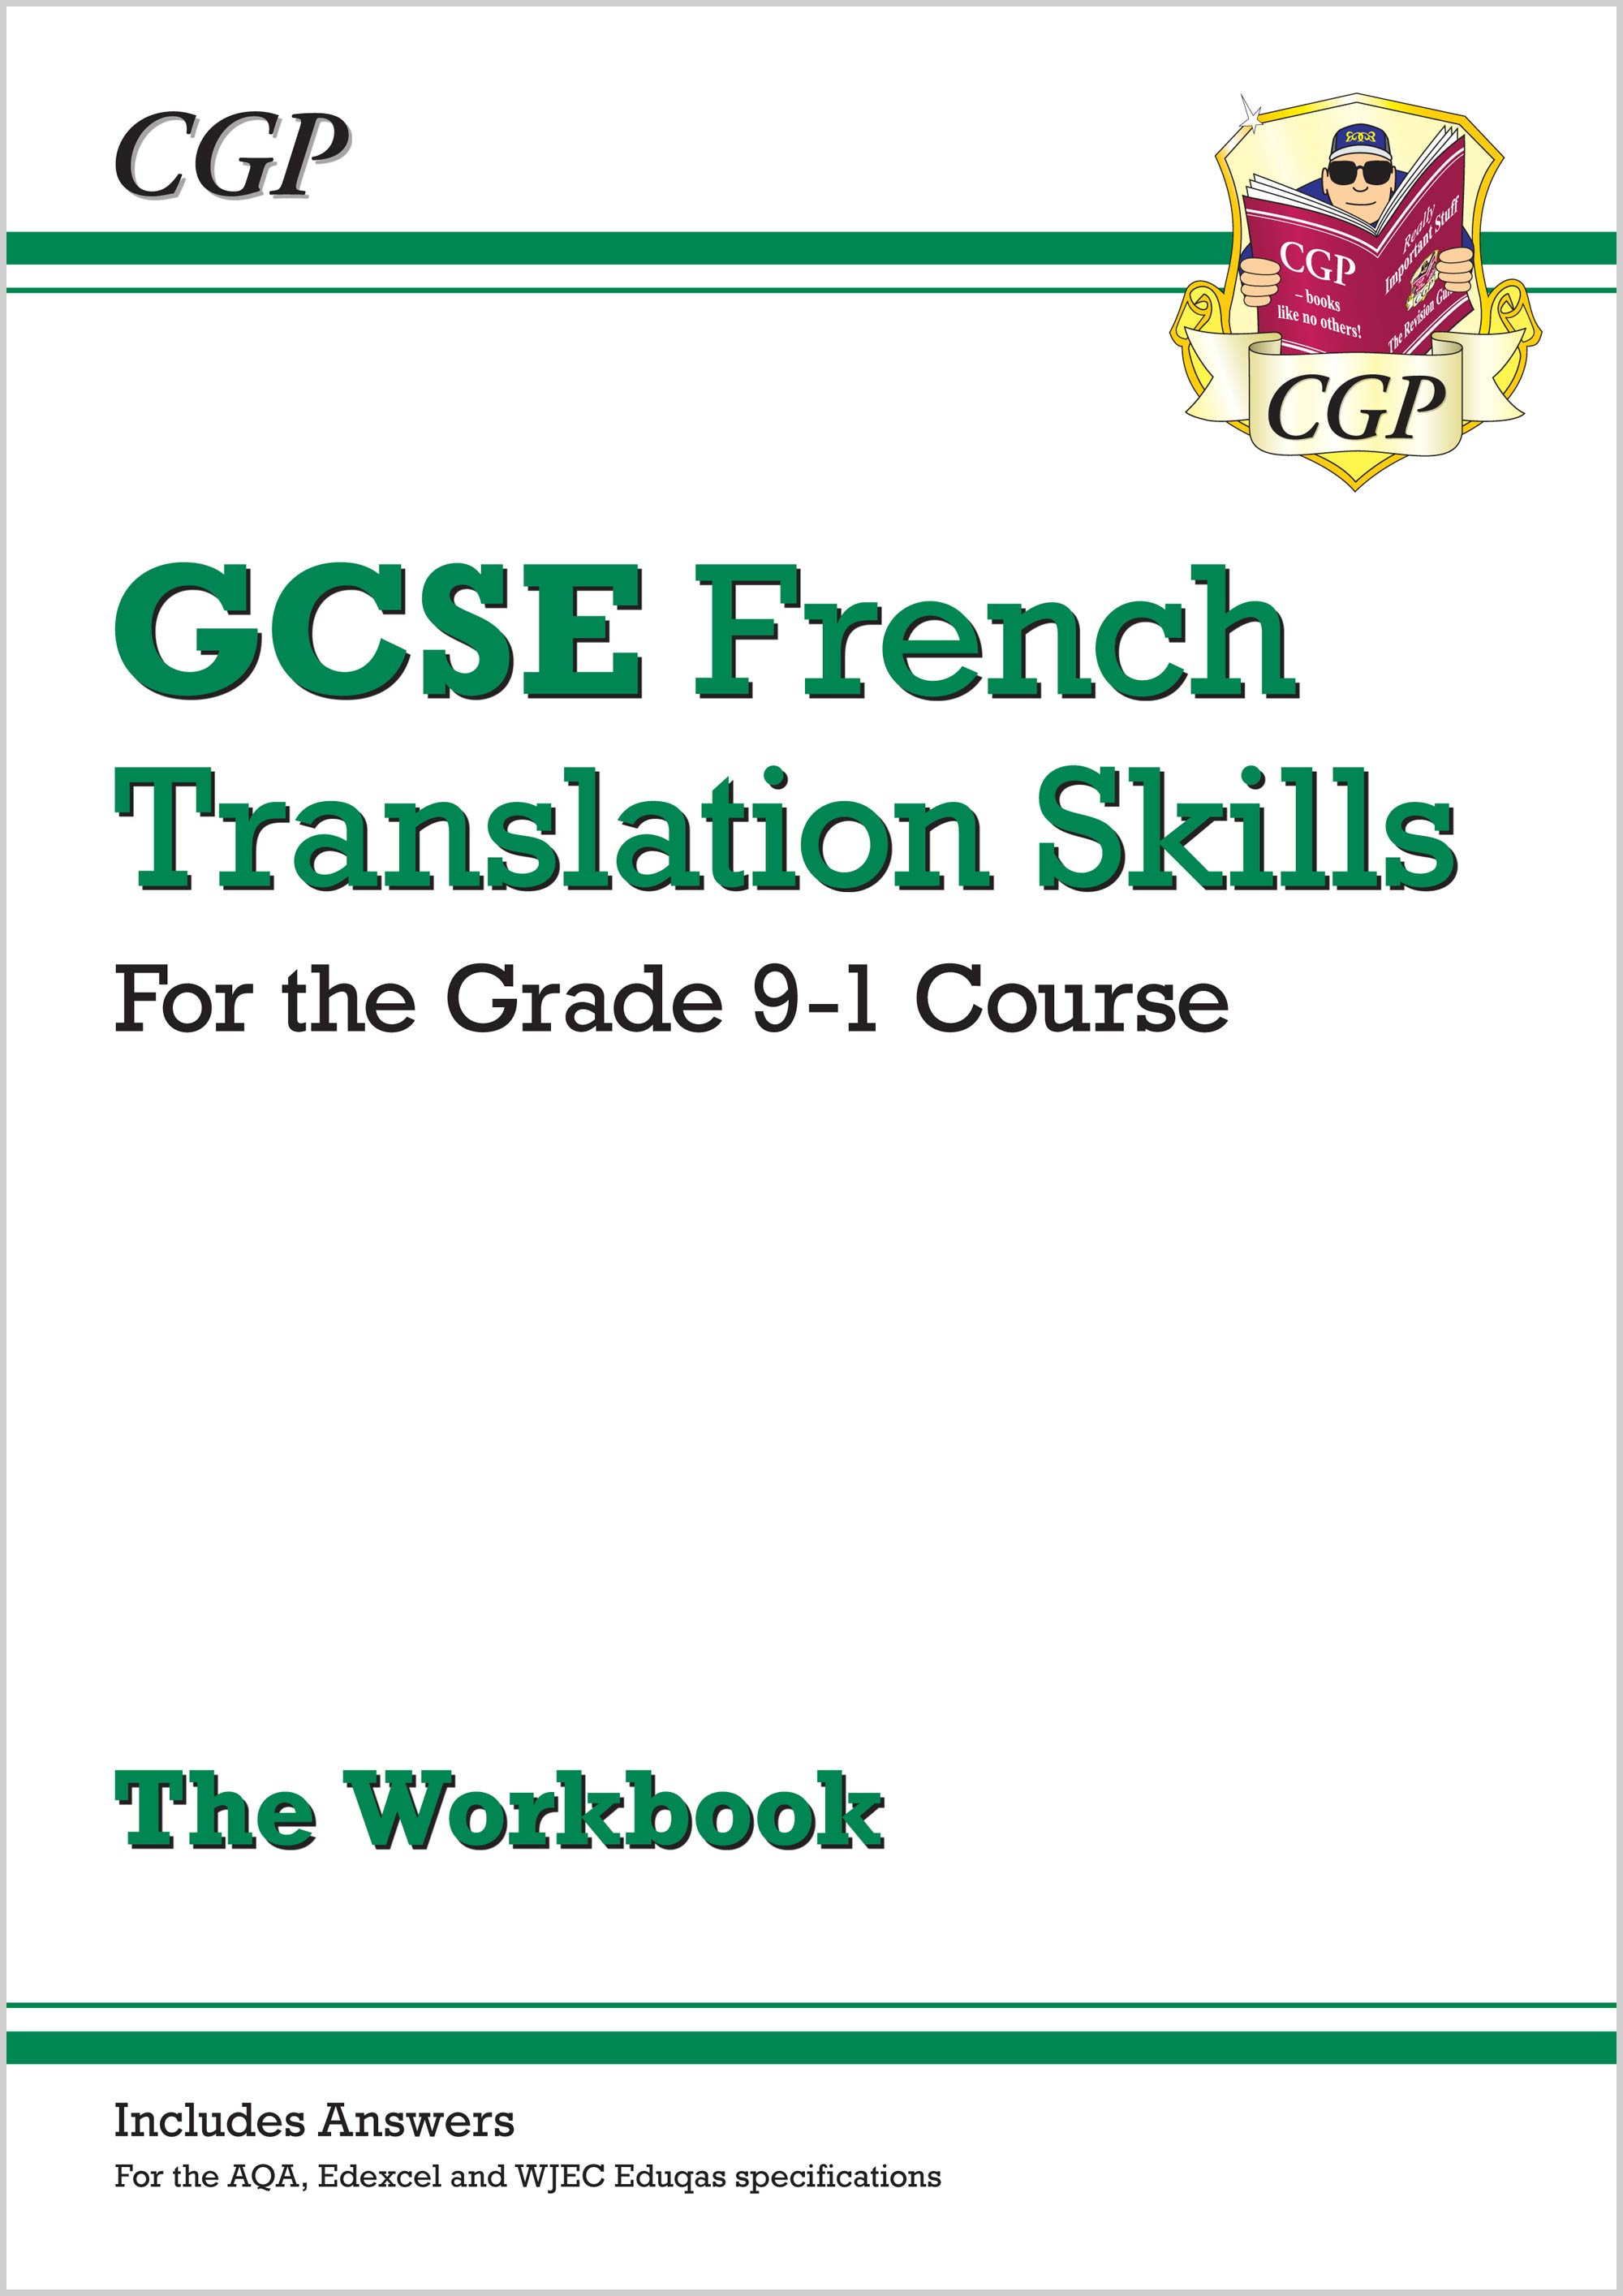 FTW41 - New Grade 9-1 GCSE French Translation Skills Workbook (includes Answers)